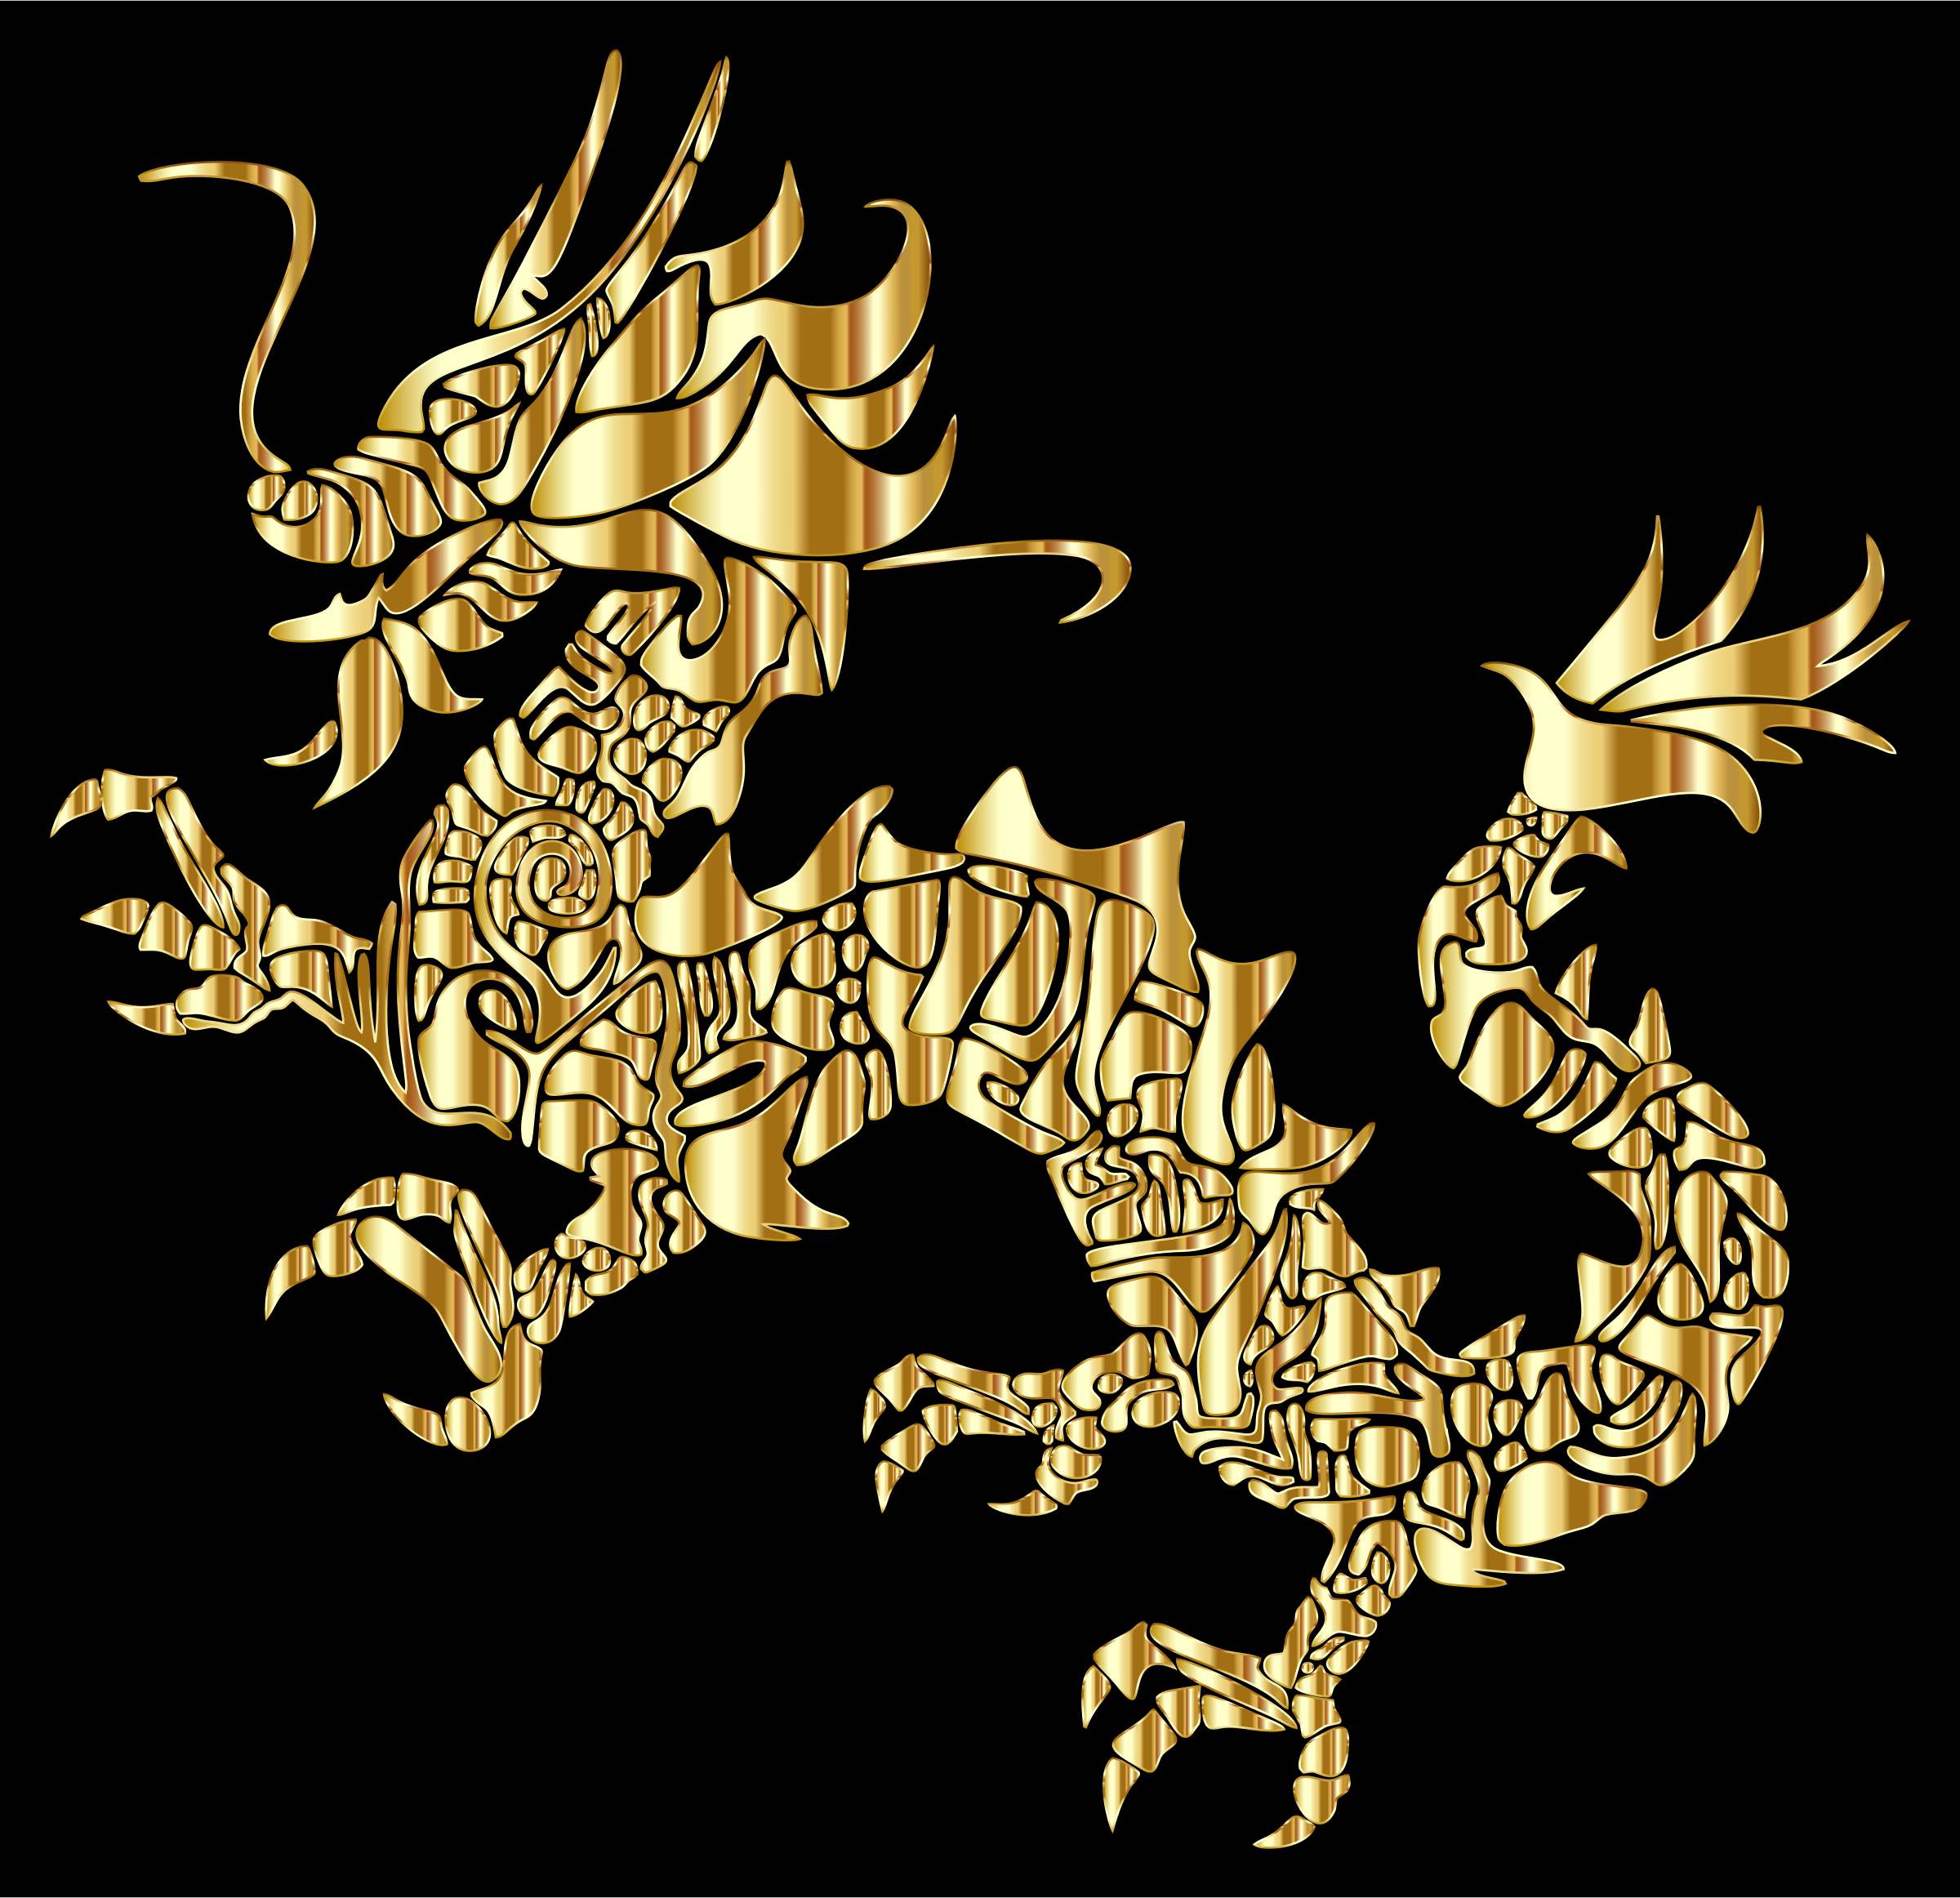 Gold Tribal Asian Dragon Silhouette by GDJ